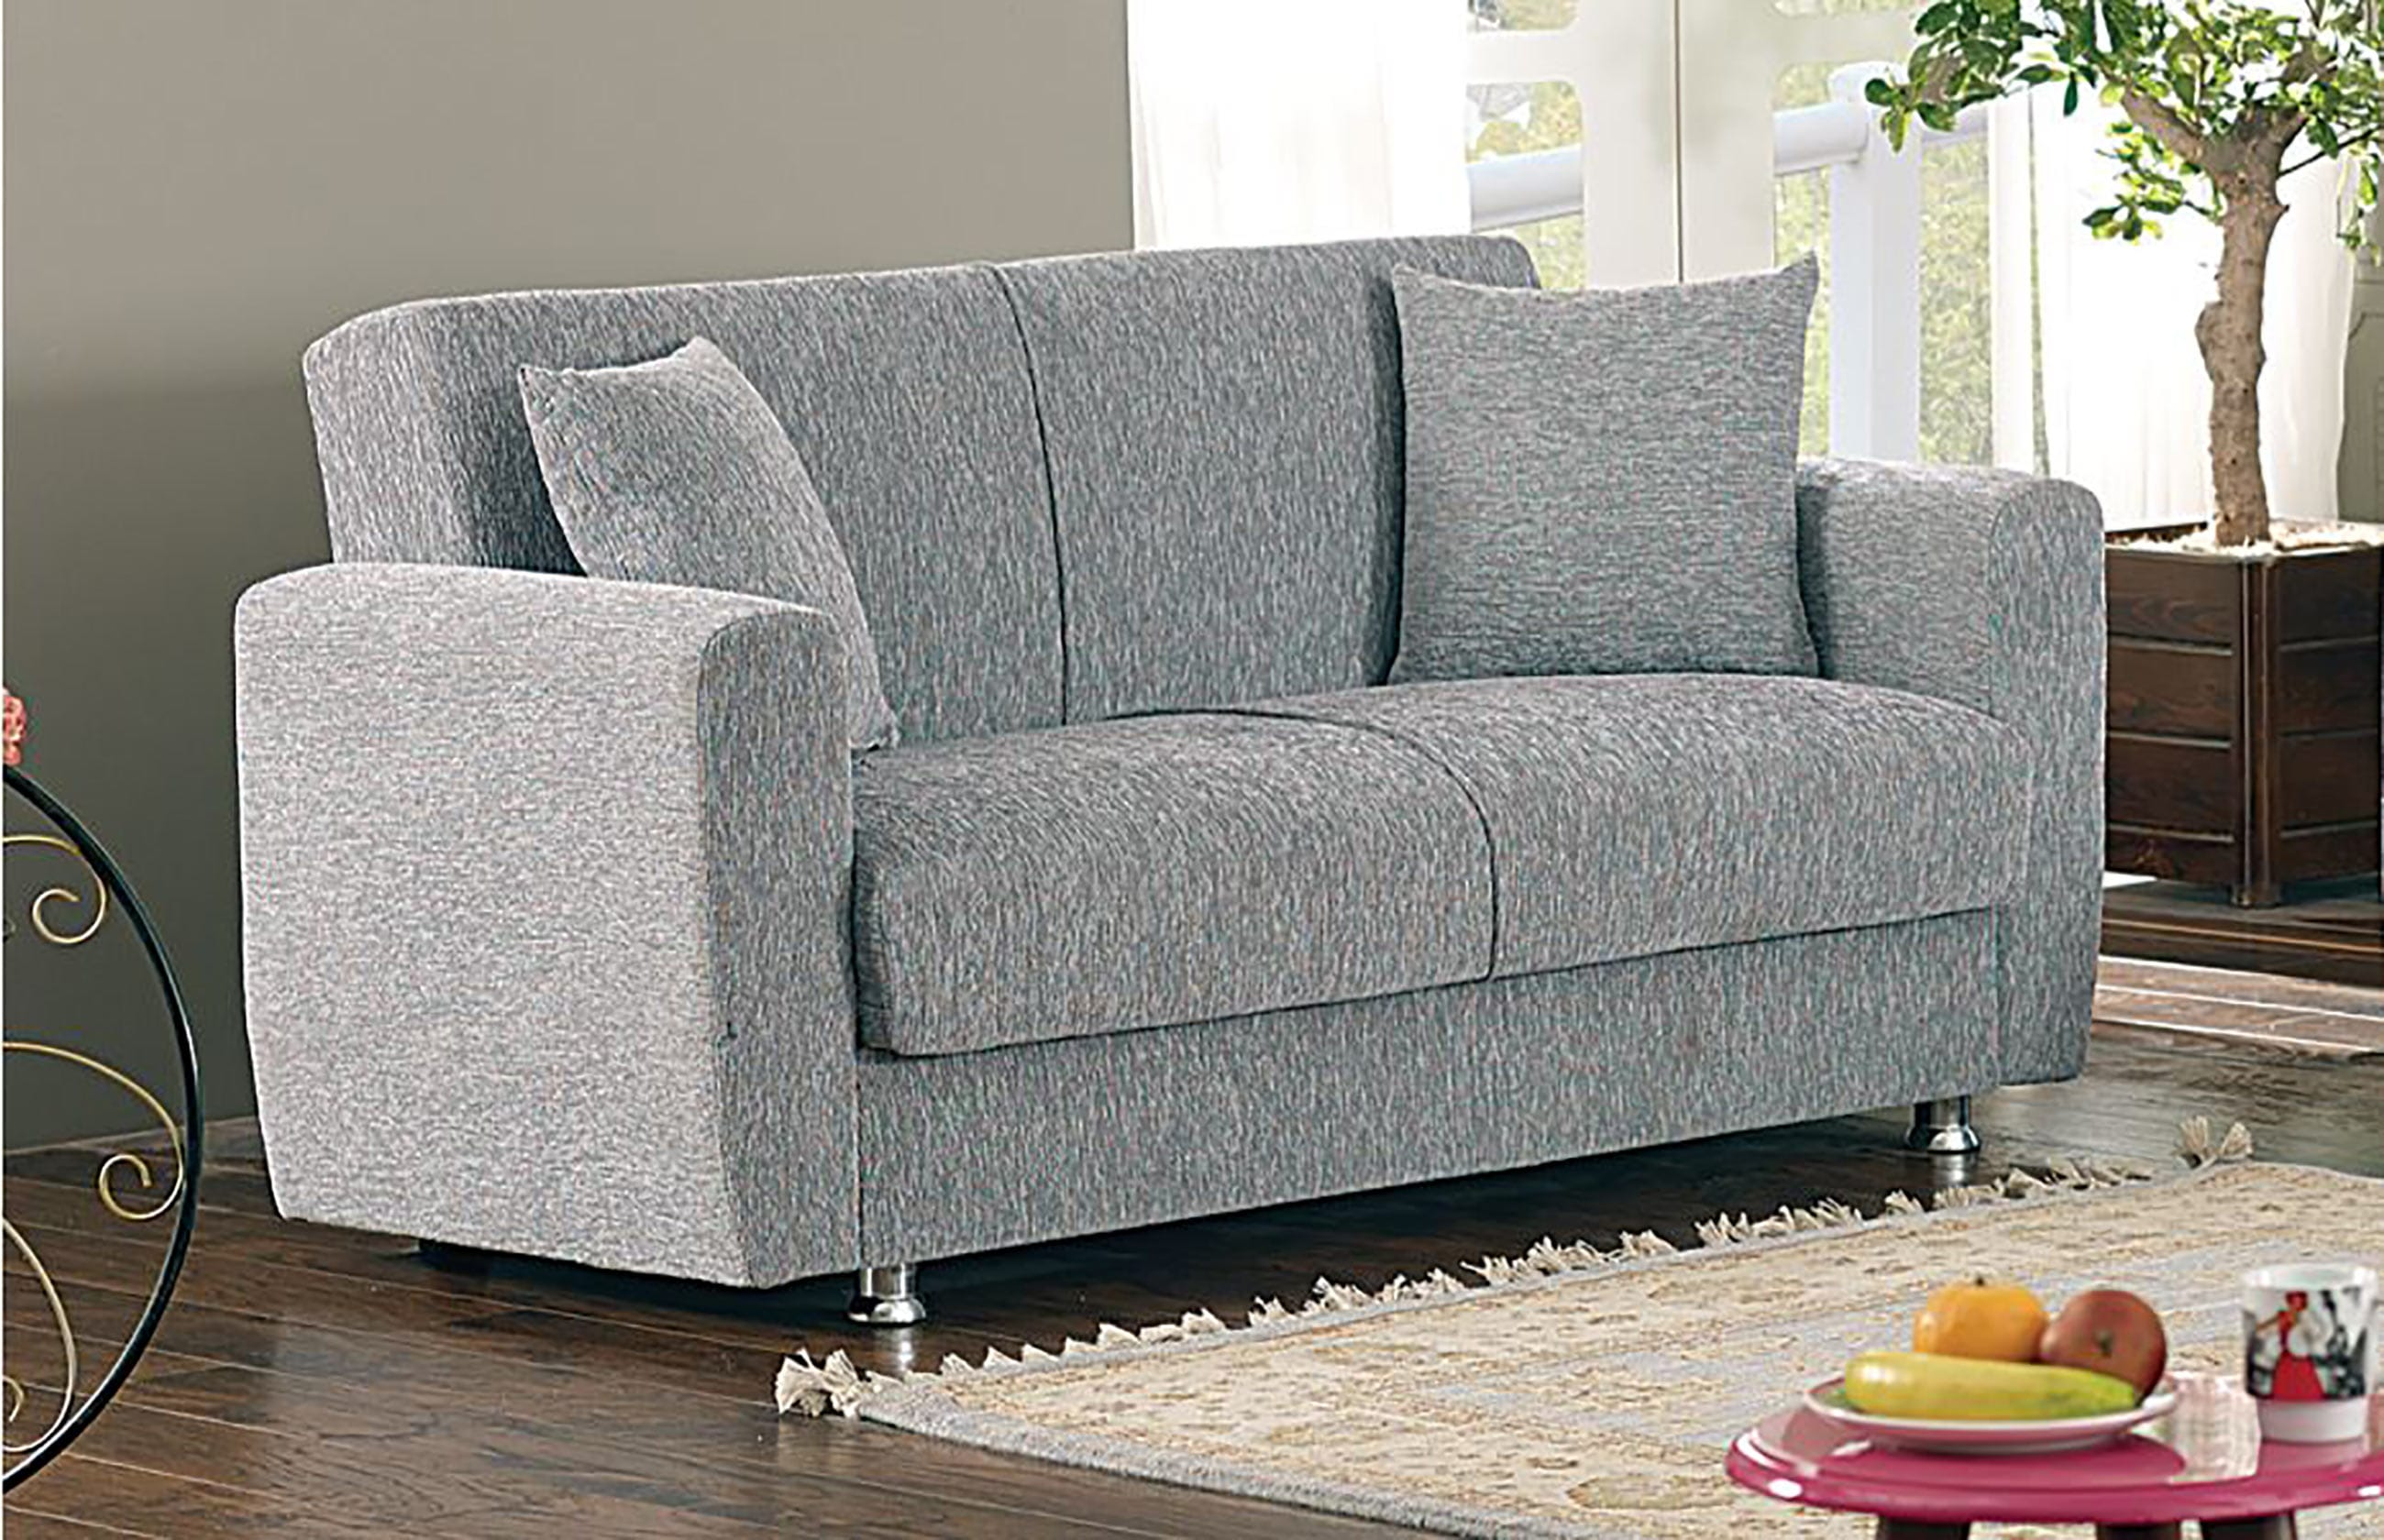 additional loveseat ideas with loveseats exclusive armchairs fabric chaises white tips sofas and glamorous